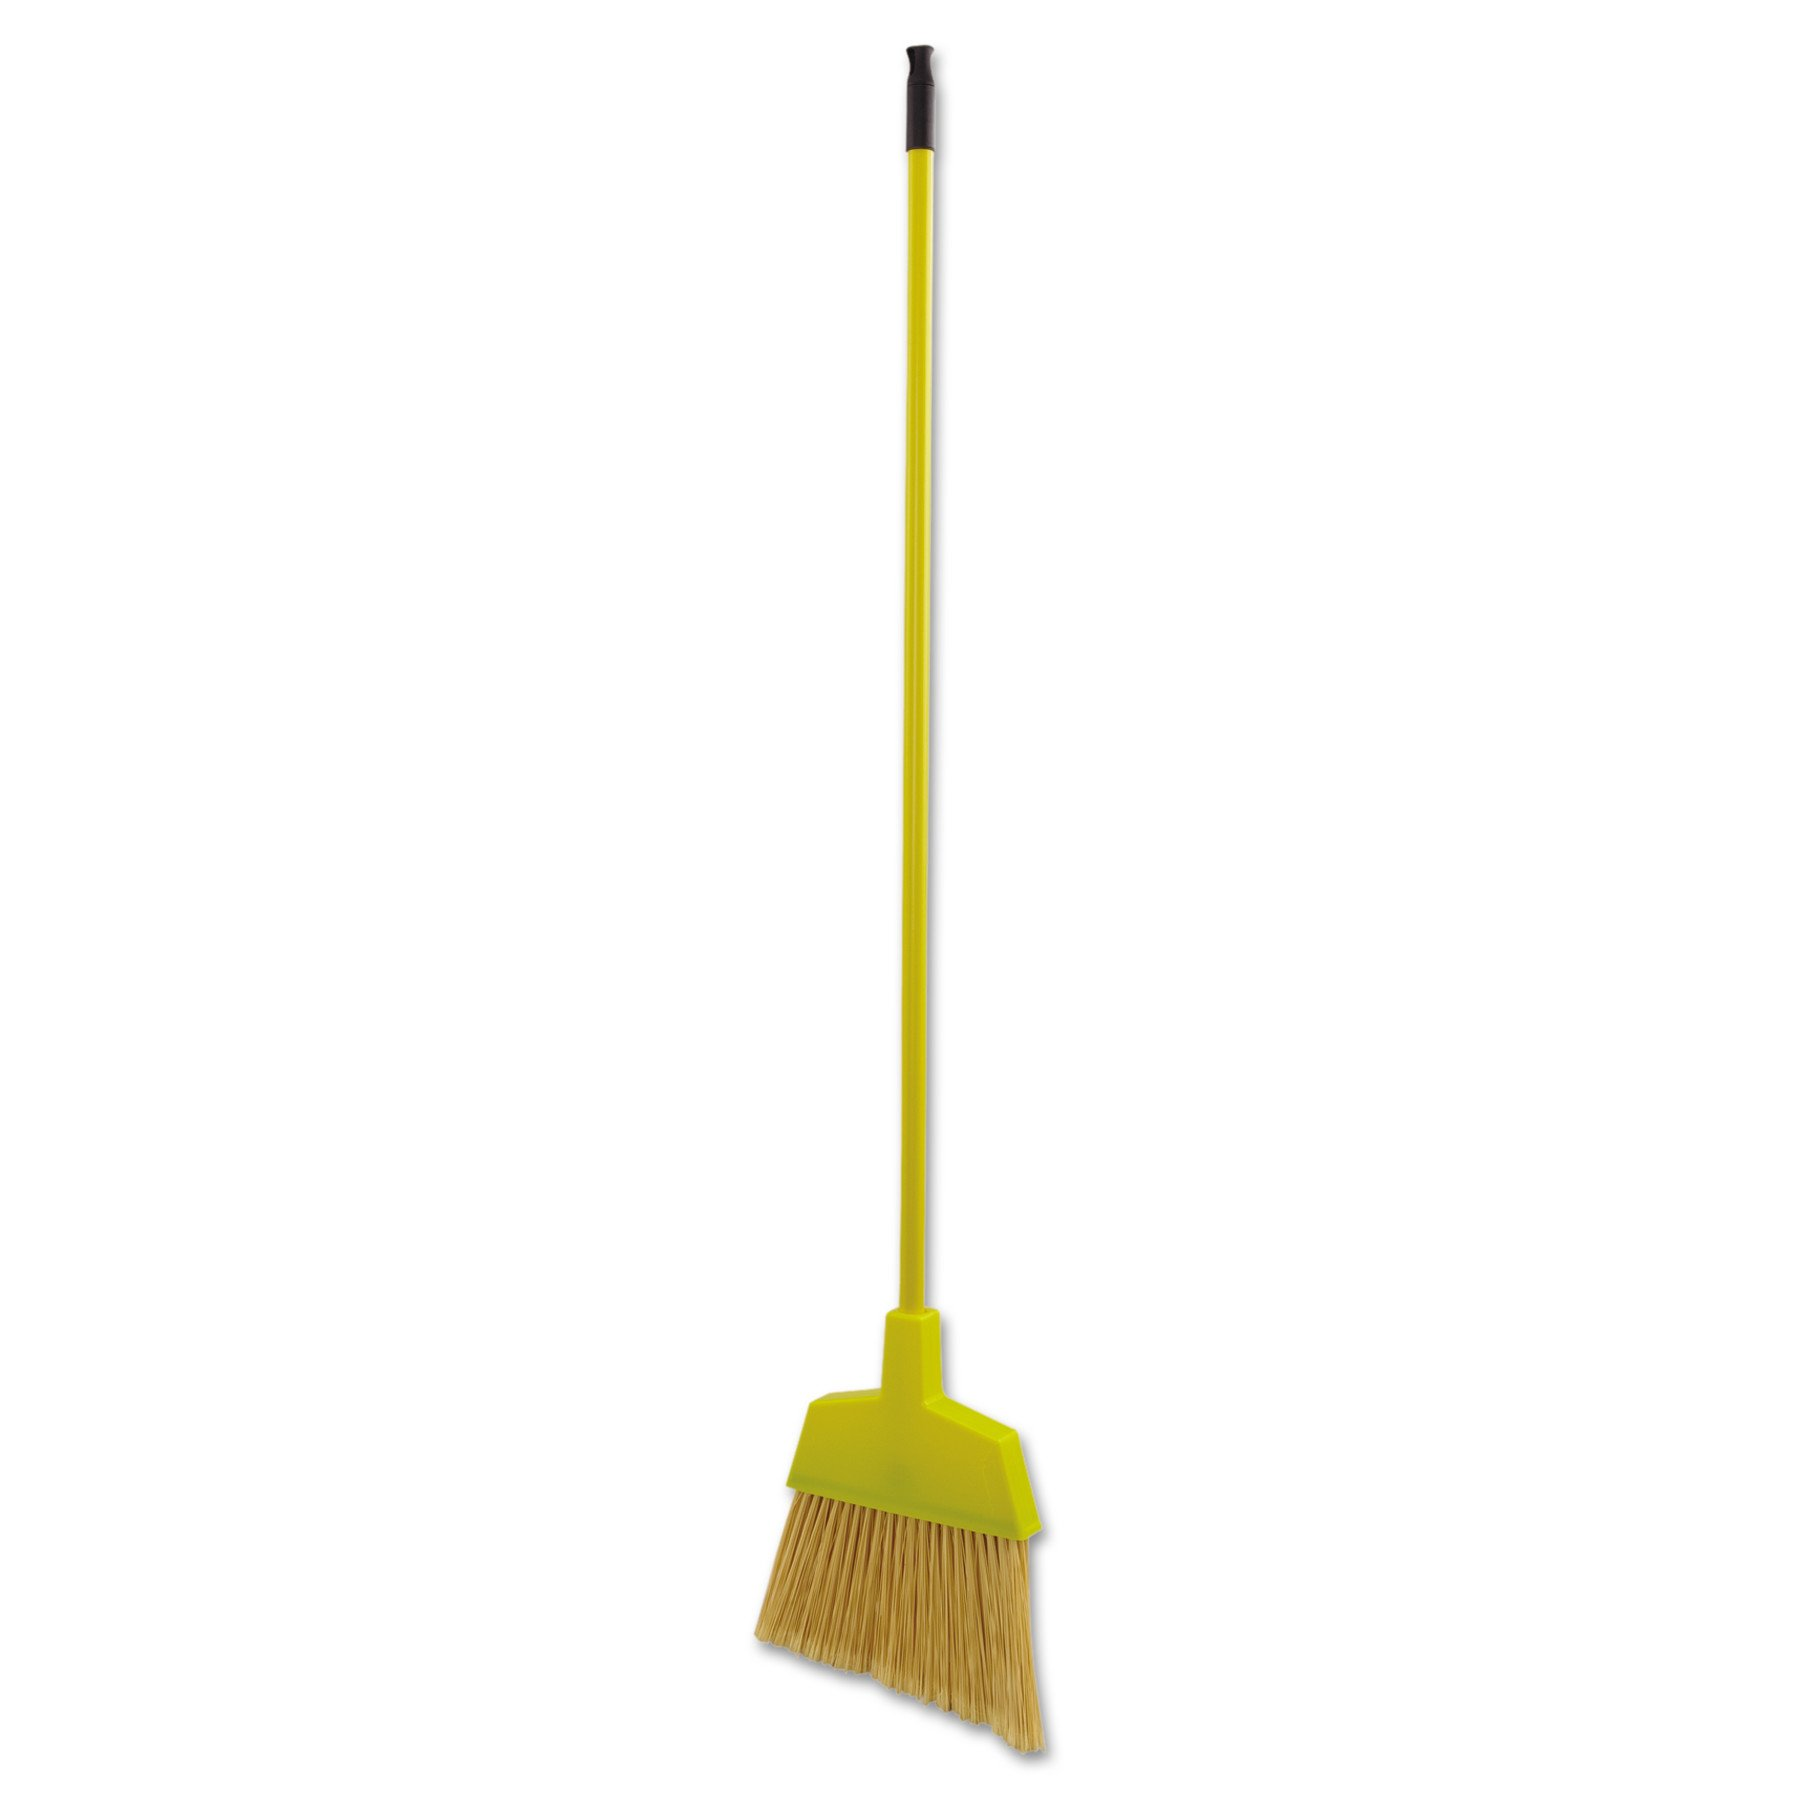 Boardwalk BWK932M Poly Bristle Angler Broom, 53'' Handle, Yellow (Case of 12) by Unisan (Image #2)